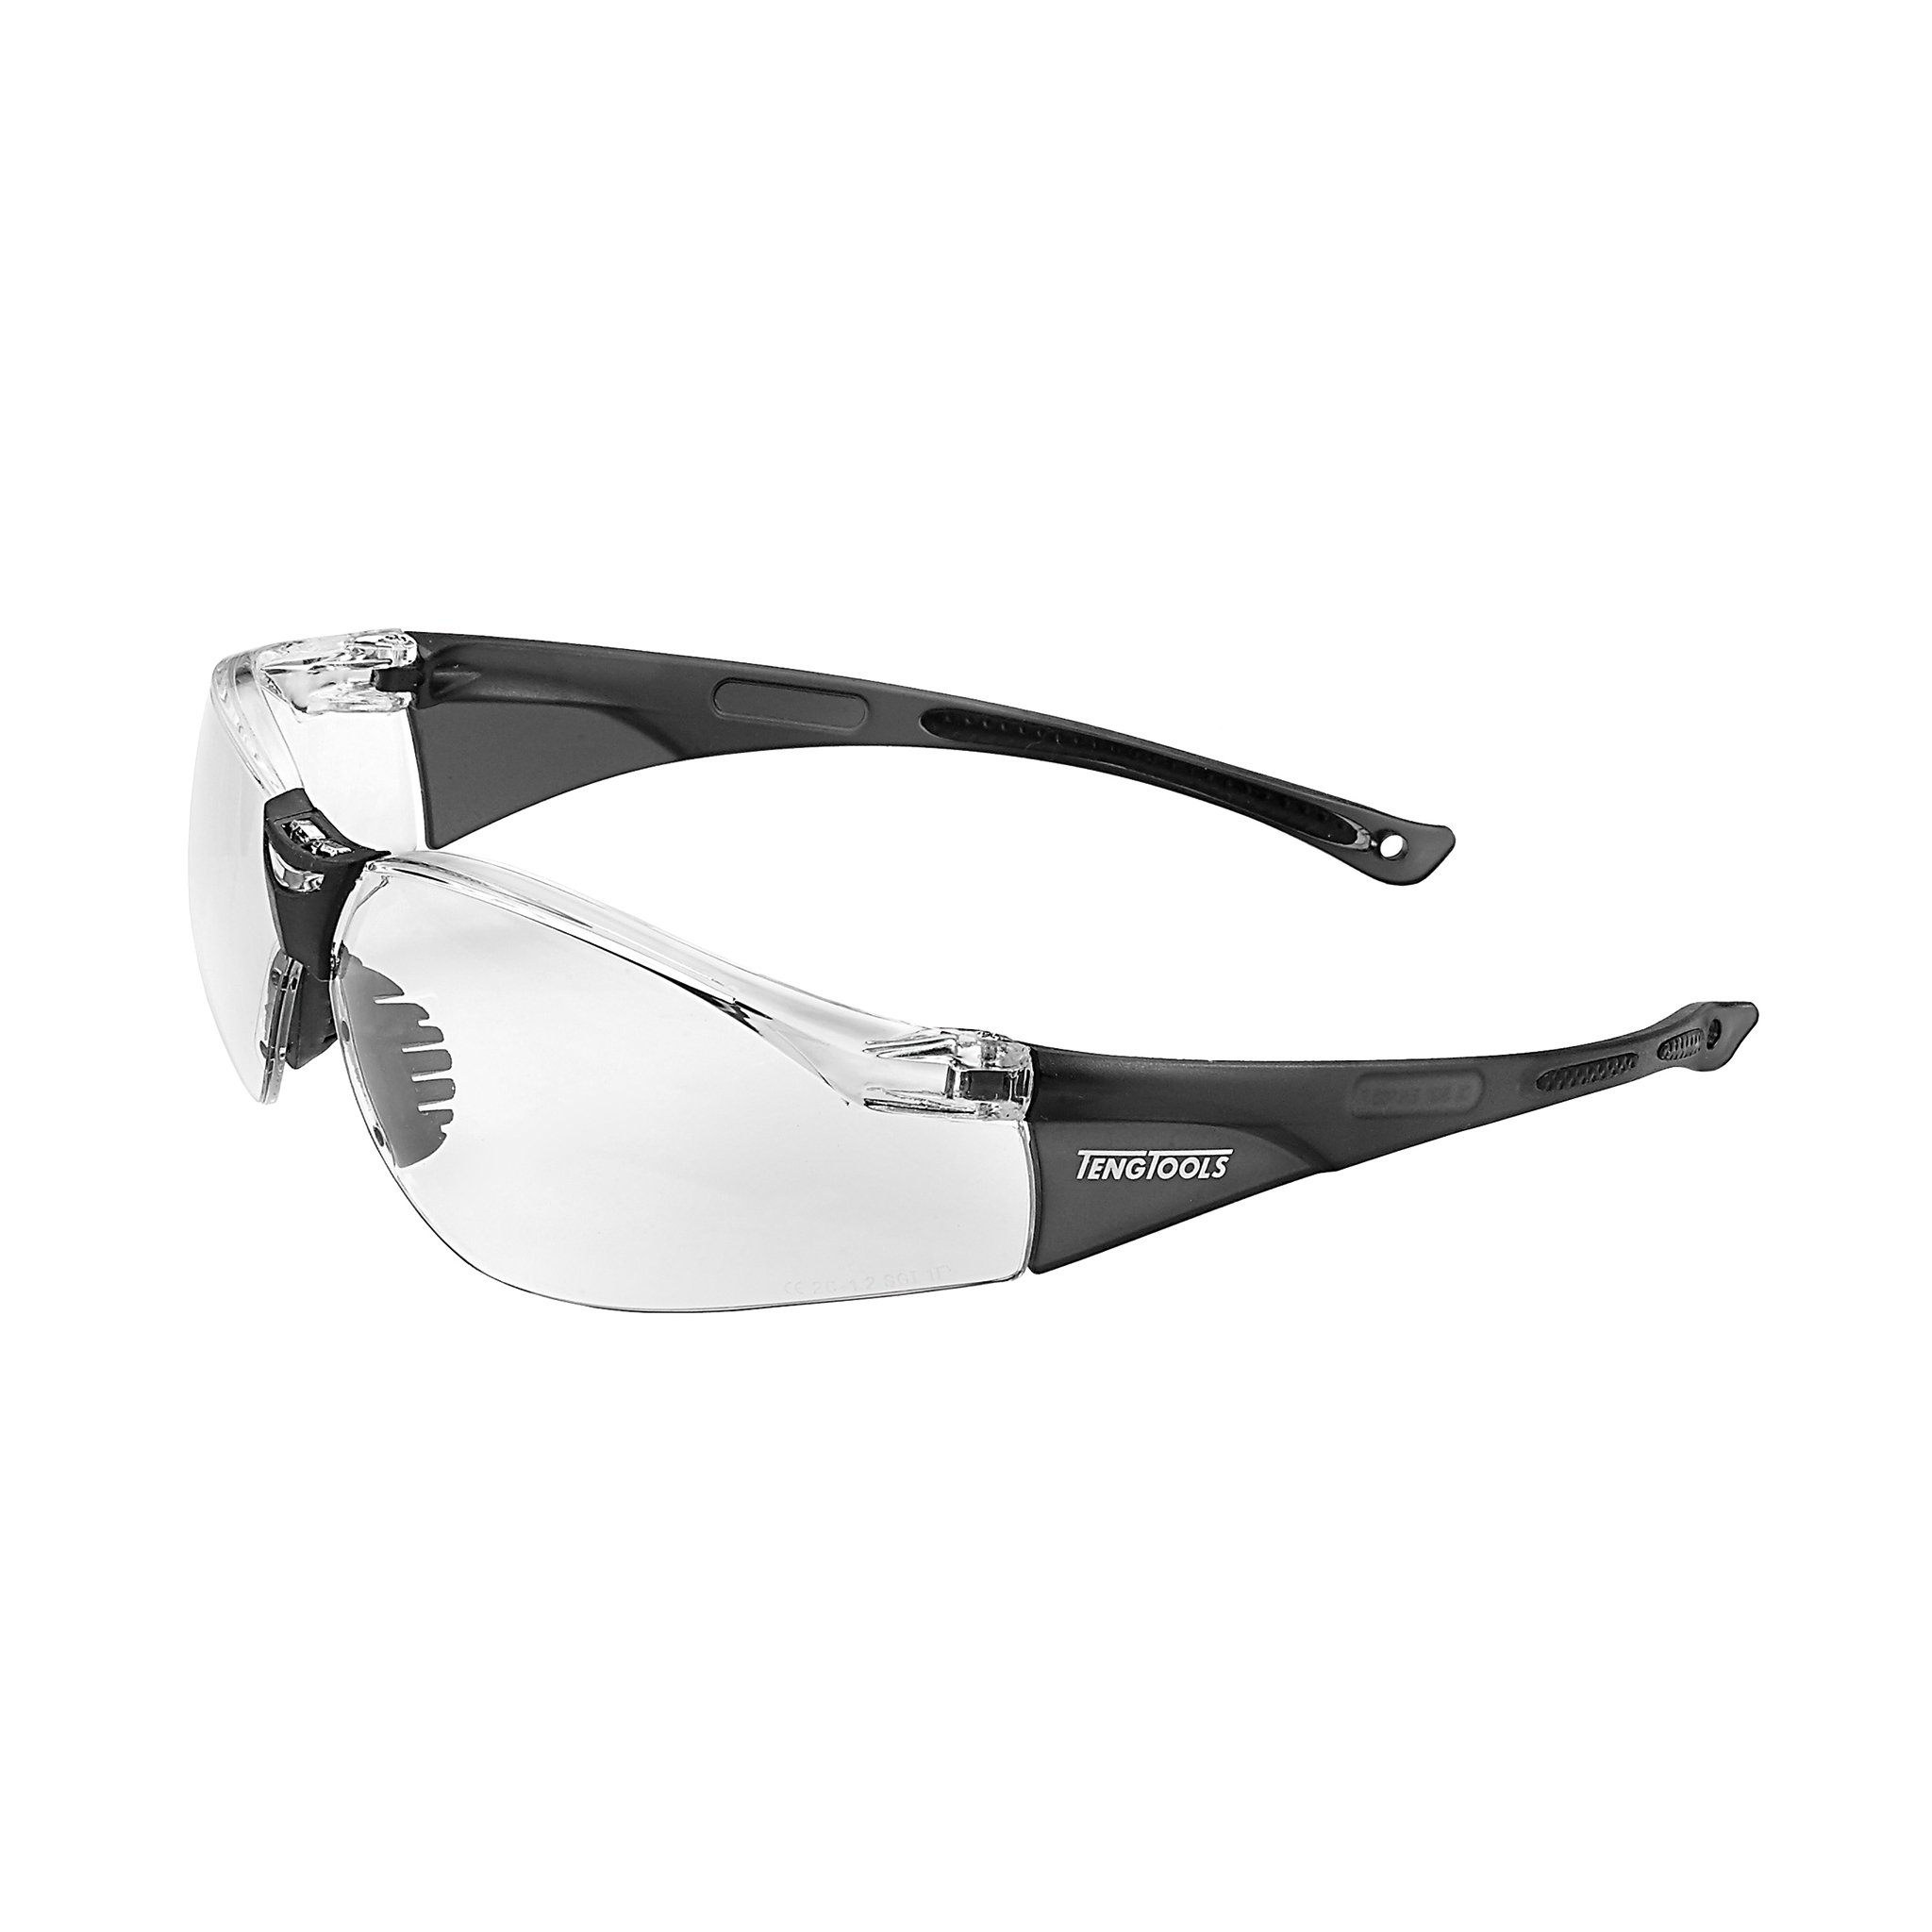 Teng Tools Clear Lens Sports Inspired Design safety